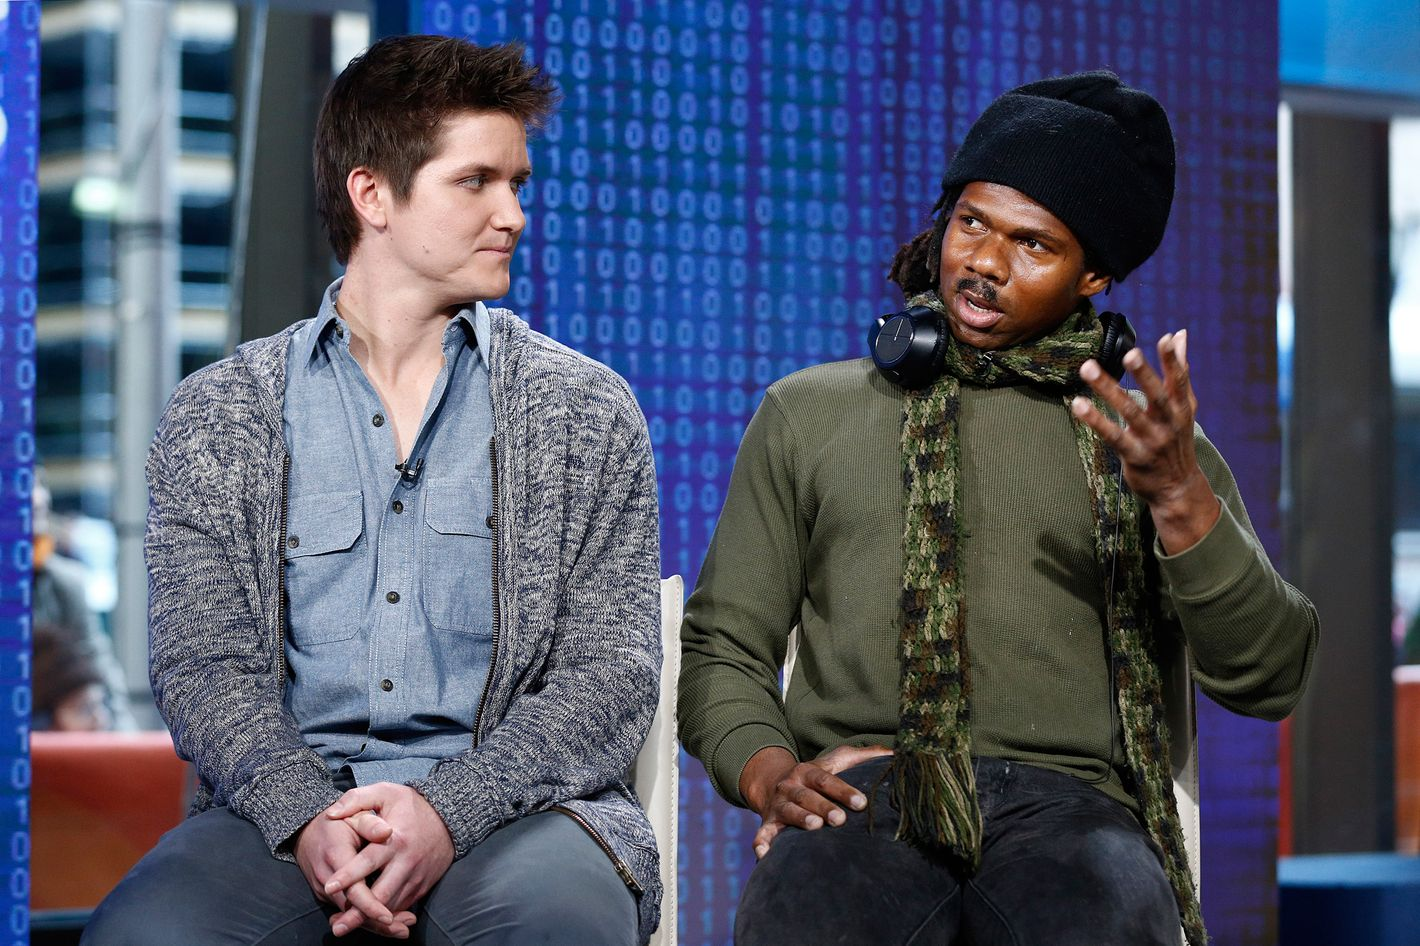 """TODAY -- Pictured: (l-r) Patrick McConlogue and Leo Grand appear on NBC News' """"Today"""" show -- (Photo by: Peter Kramer/NBC)"""